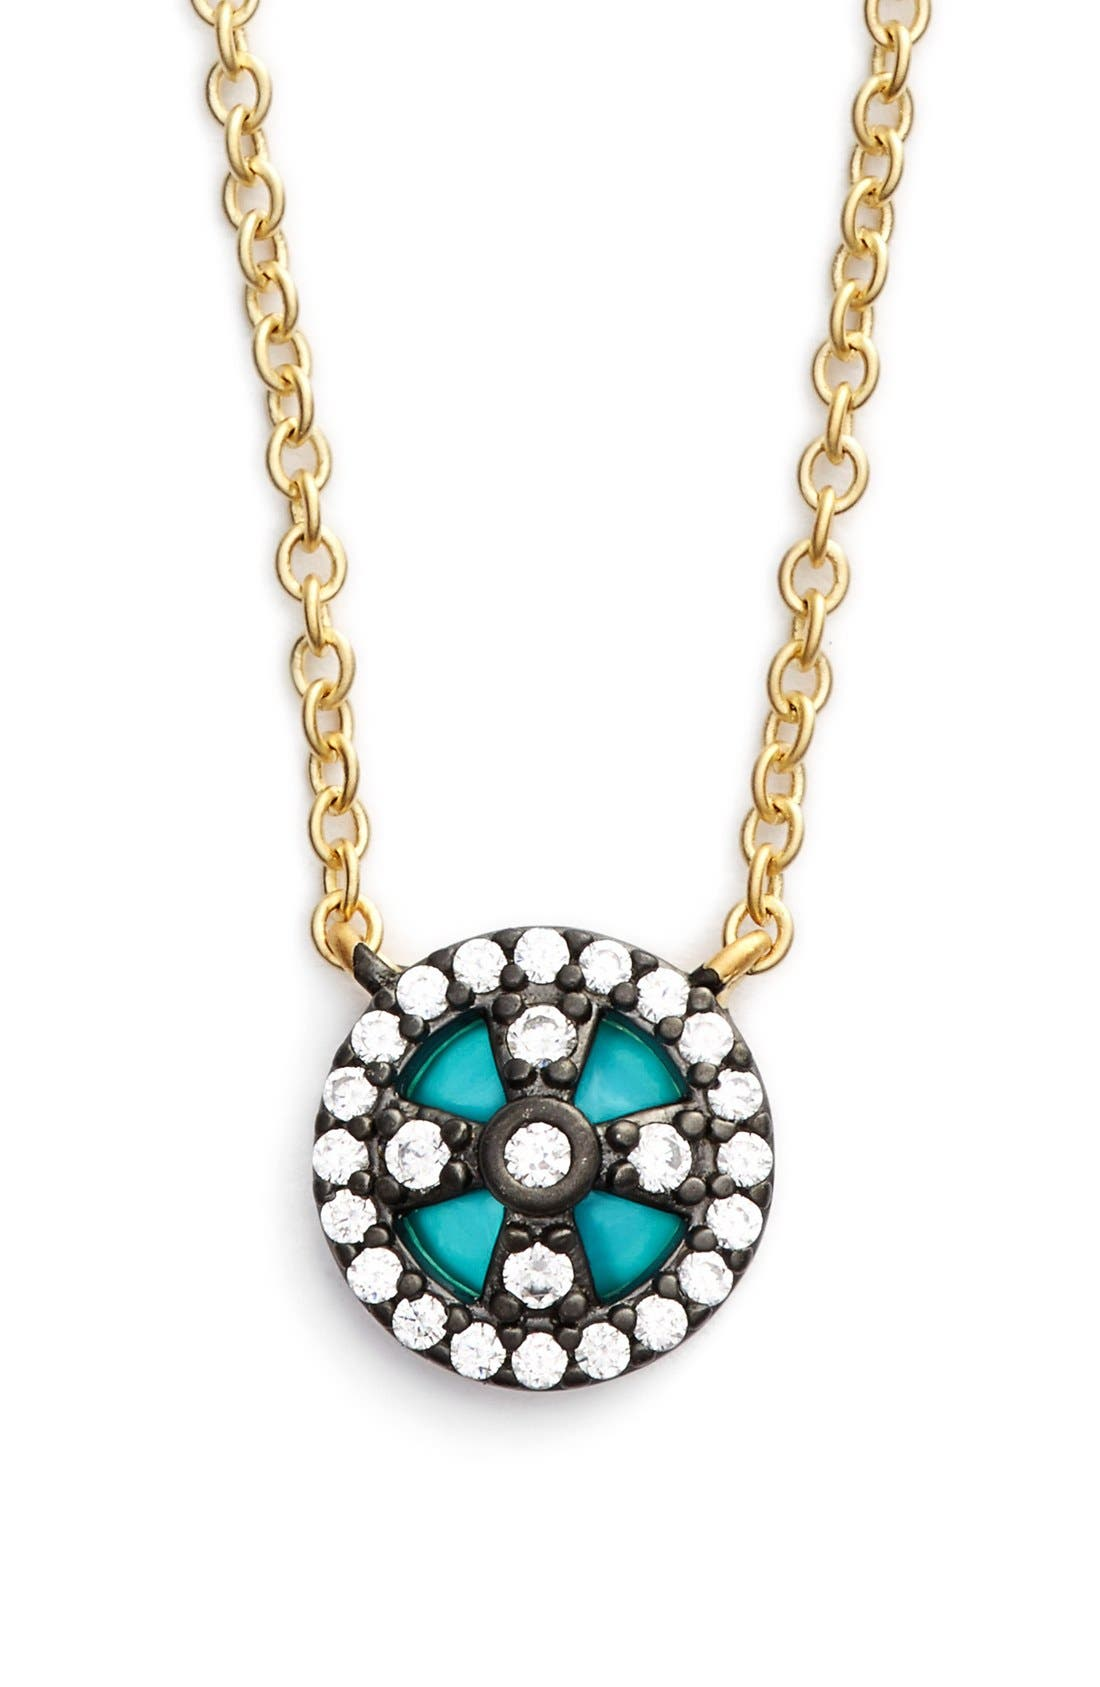 Alternate Image 1 Selected - FREIDA ROTHMAN 'Metropolitan' Small Pendant Necklace